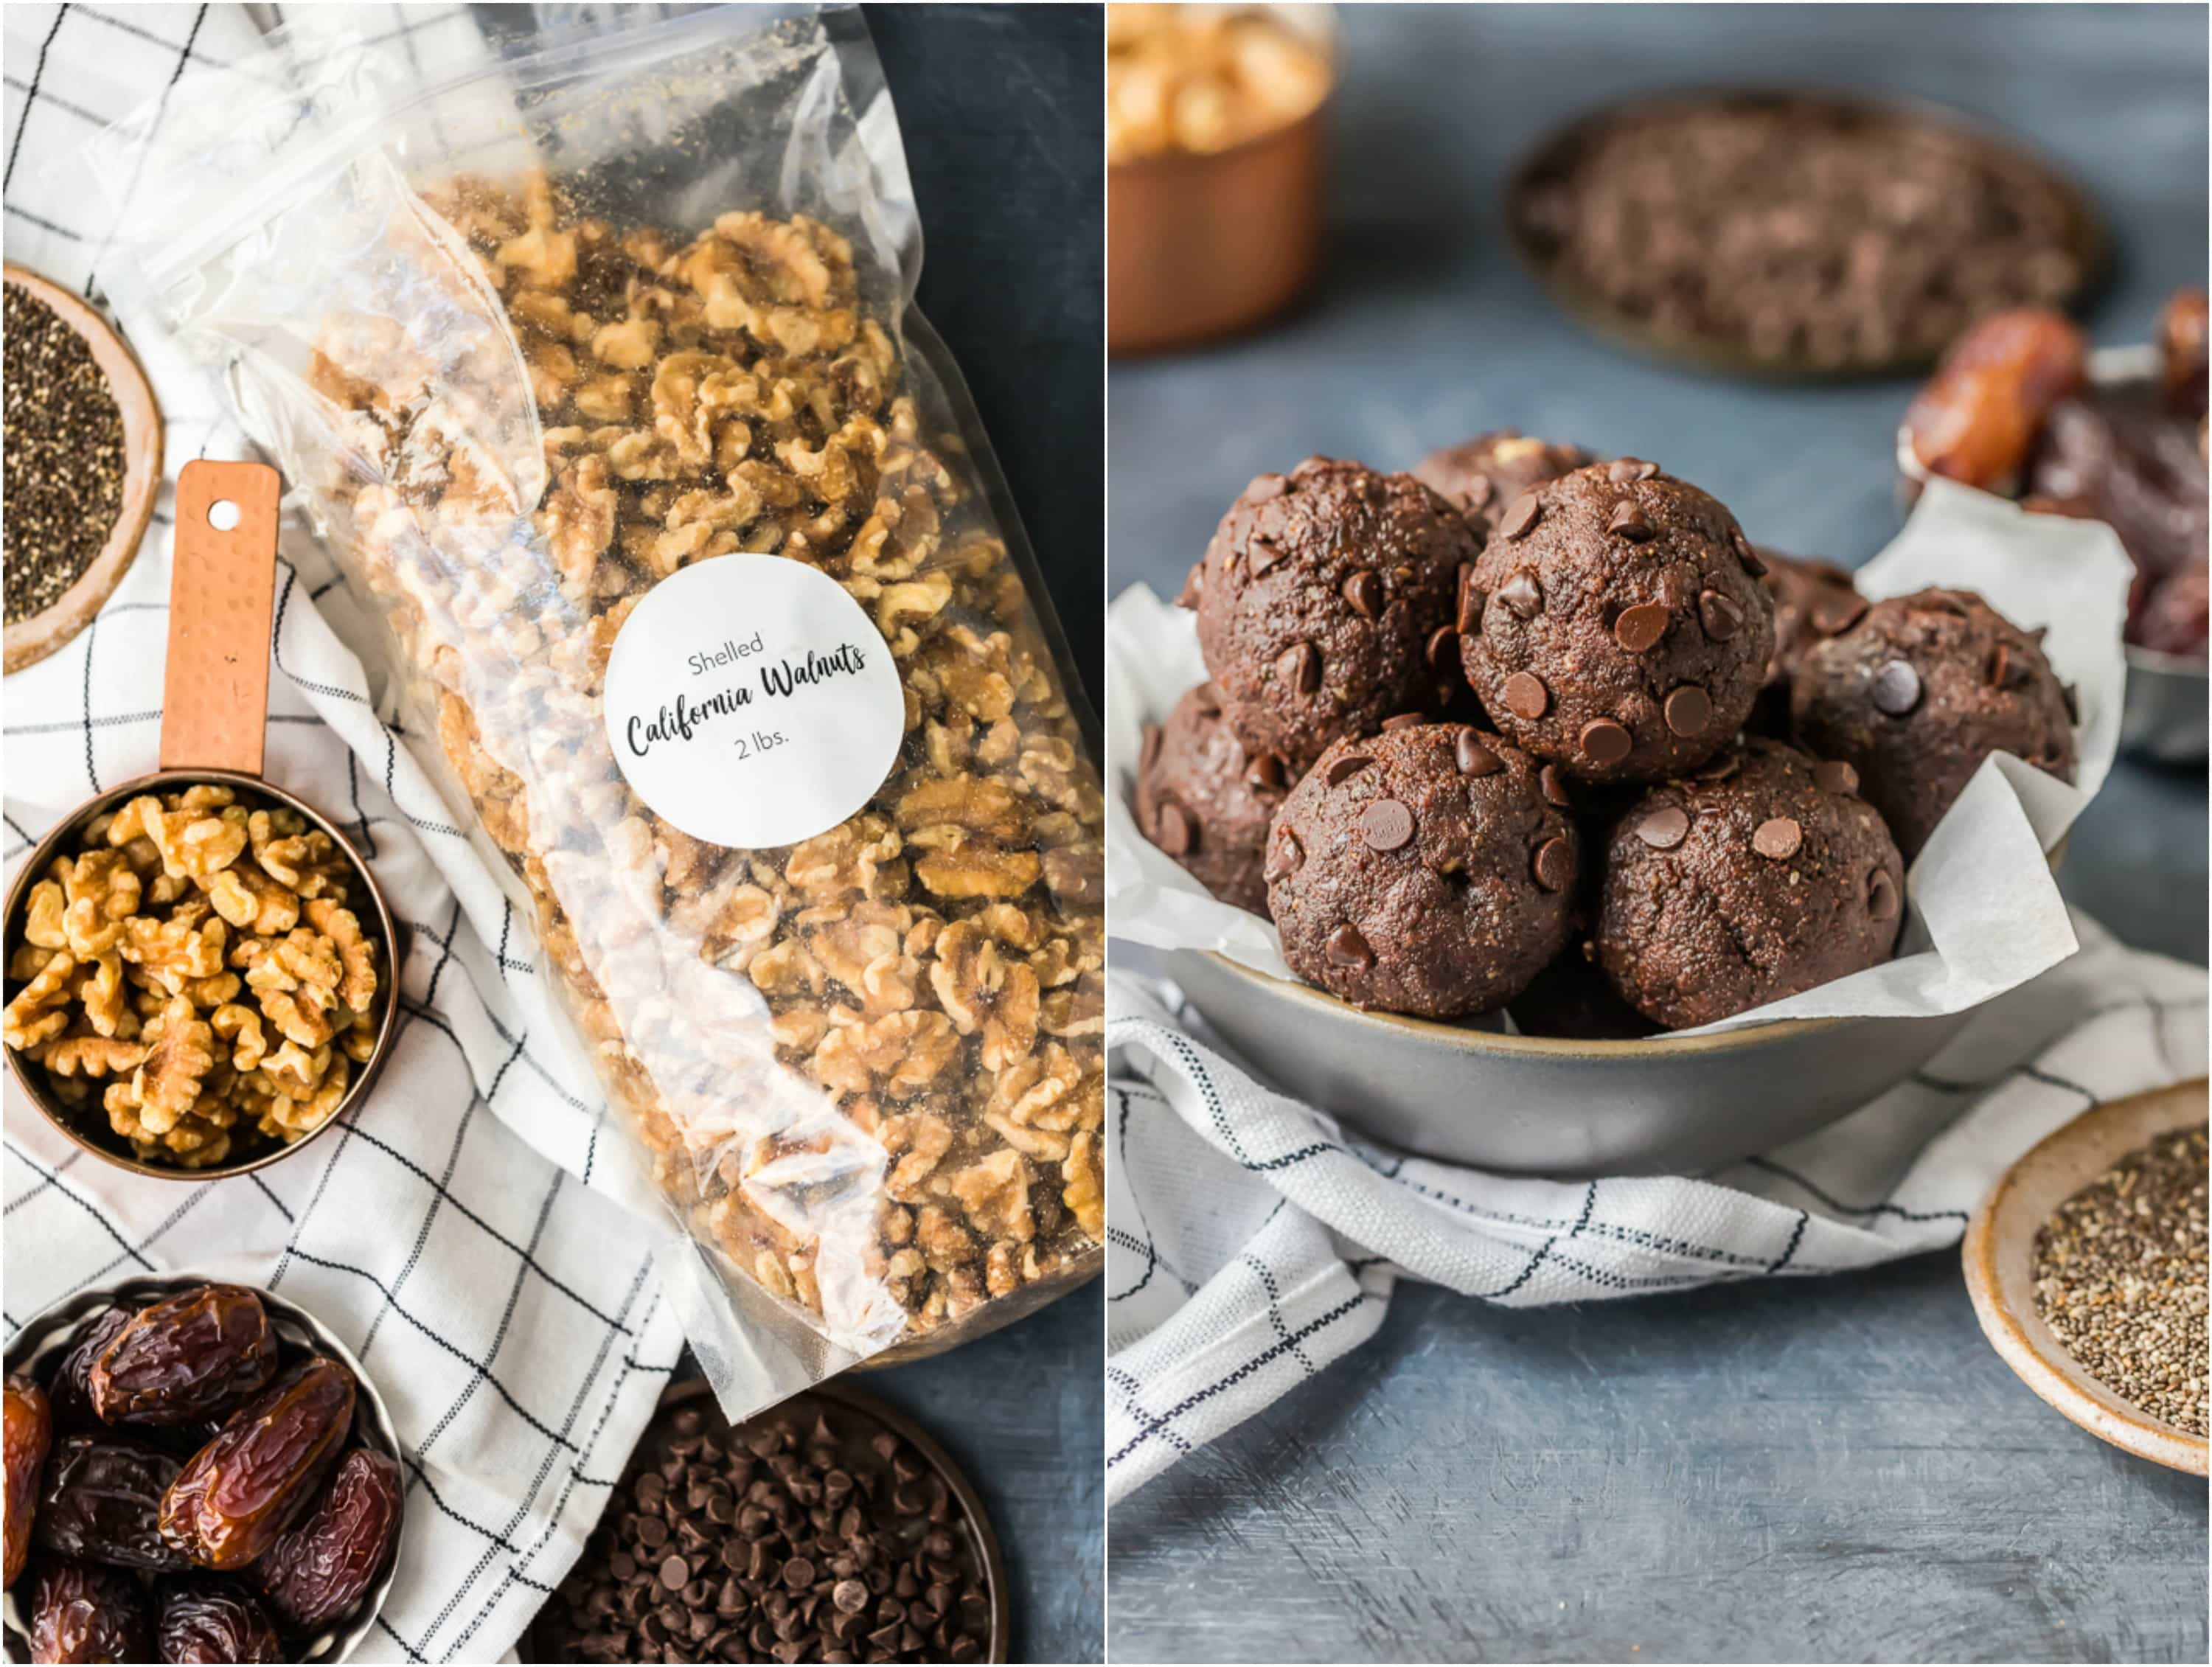 Walnut Brownie Protein Balls are the perfect pop-able breakfast, after workout snack, or simple sweet treat to fuel you throughout the day. This grab and go Chocolate Energy Bites Recipe is so fast and easy, you'll want to make a batch every week. Stuffed with healthy ingredients such as walnuts, unsweetened cocoa powder, chia seeds, peanut butter, and more...these Nutty Chocolate Energy Bites taste like brownie batter but are packed with  protein and goodness!